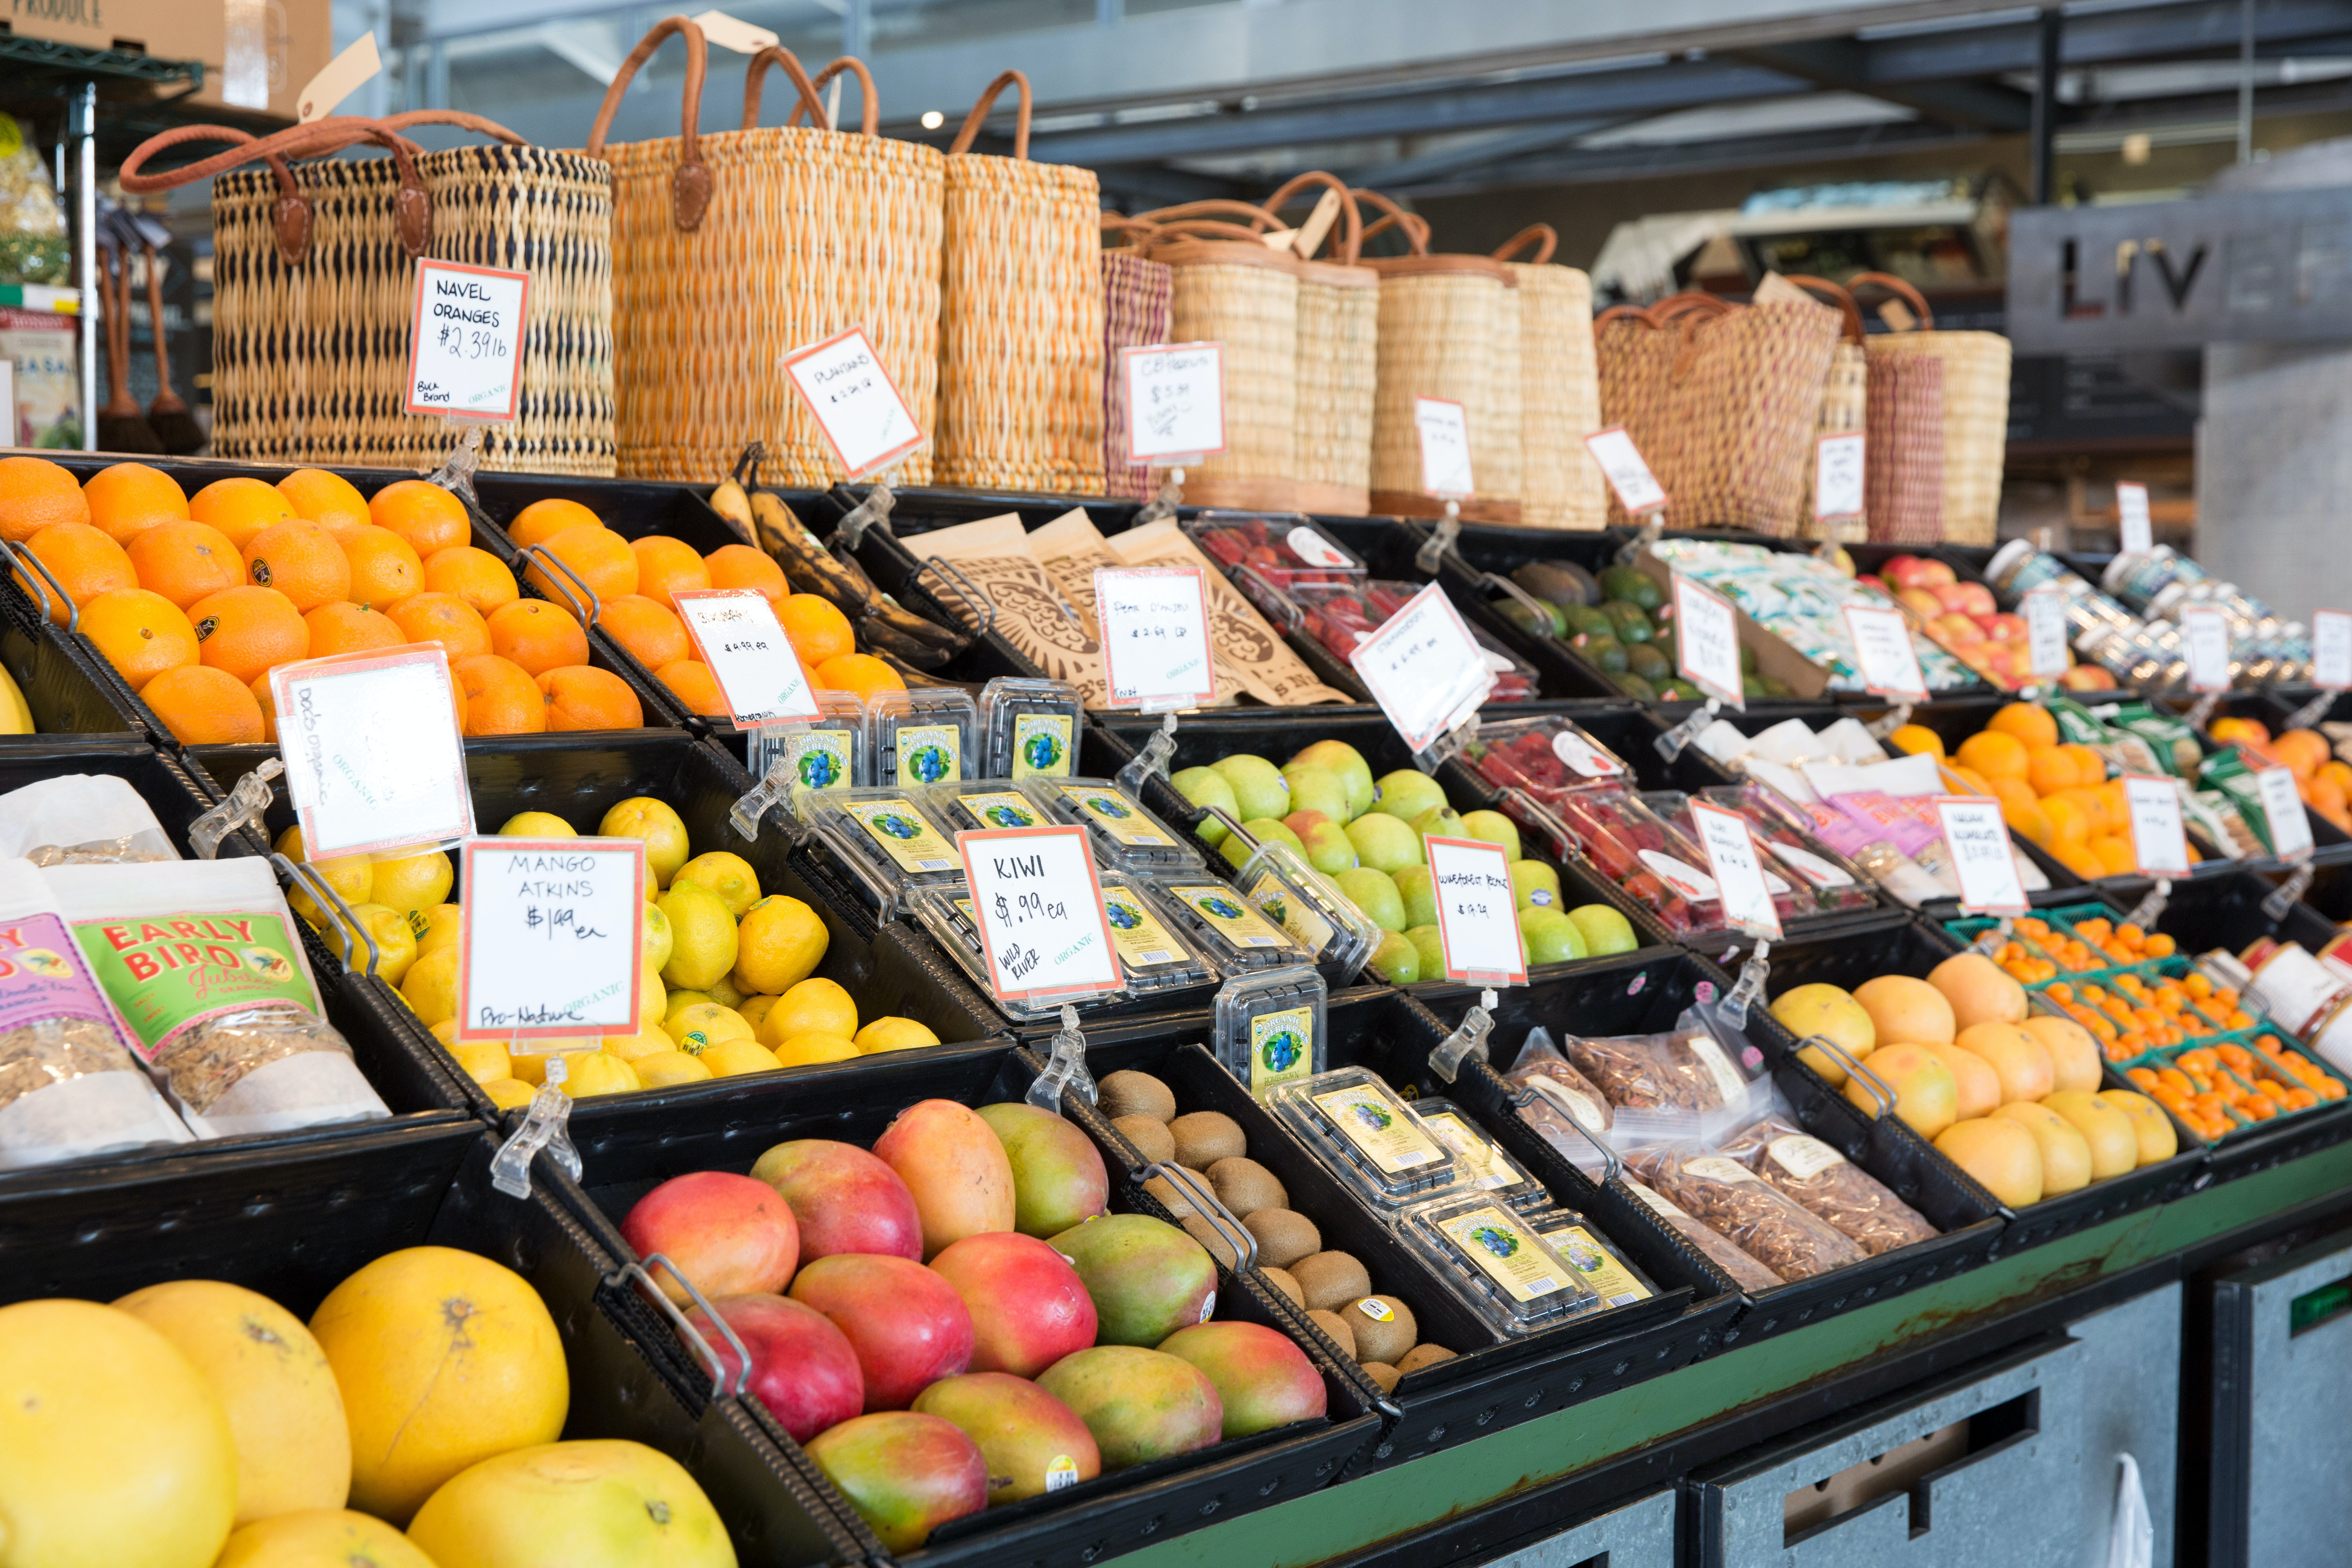 Oxbow Public Market in downtown Napa offers plenty of local products that showcase the area's bounty.